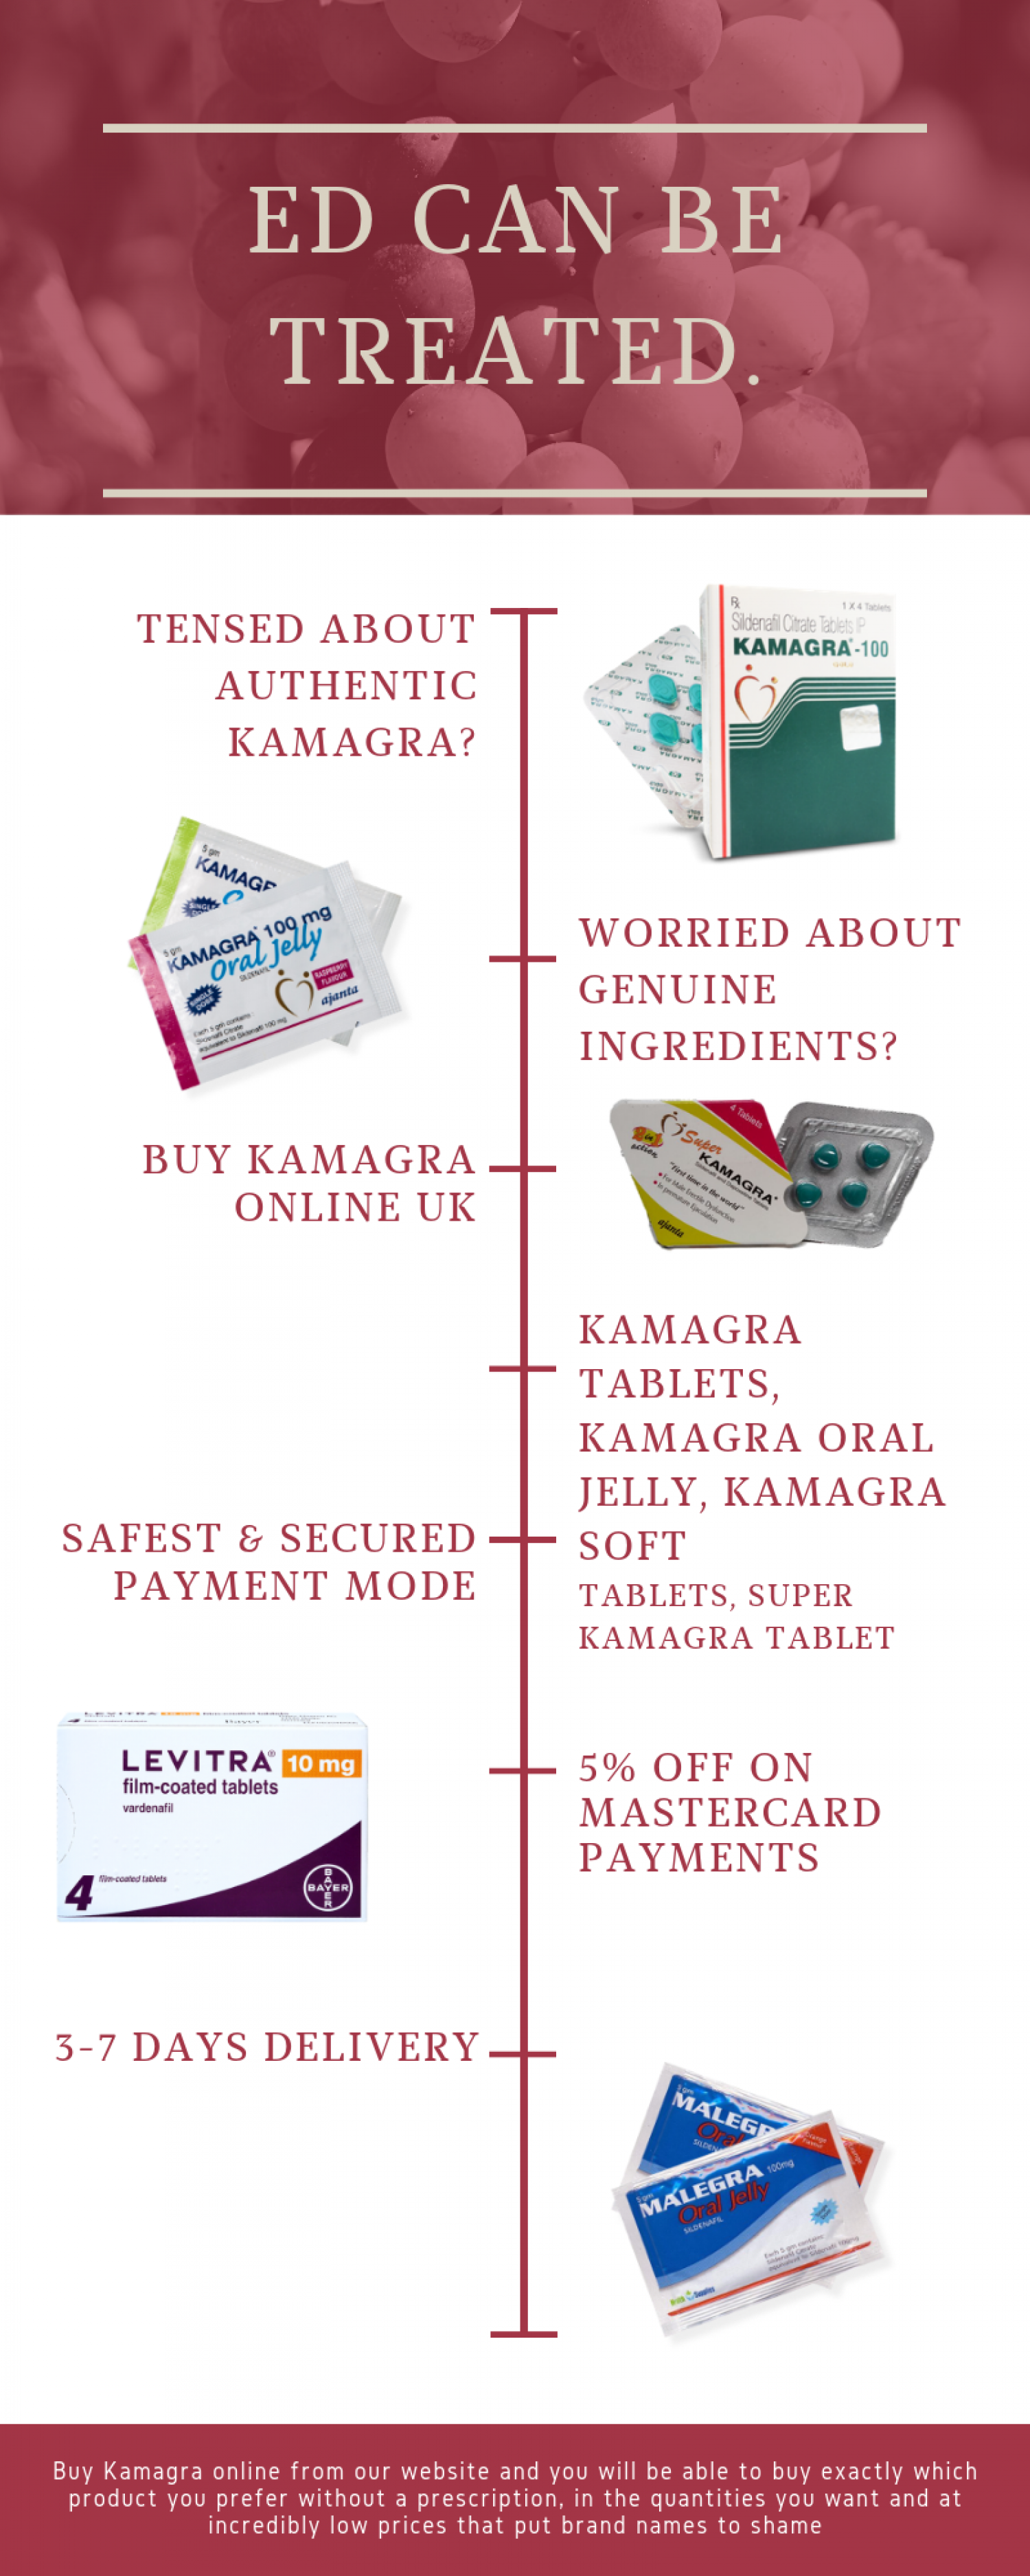 Welcome to BuyKamagraUK.com - The One Stop Solution to buy Kamagra Infographic